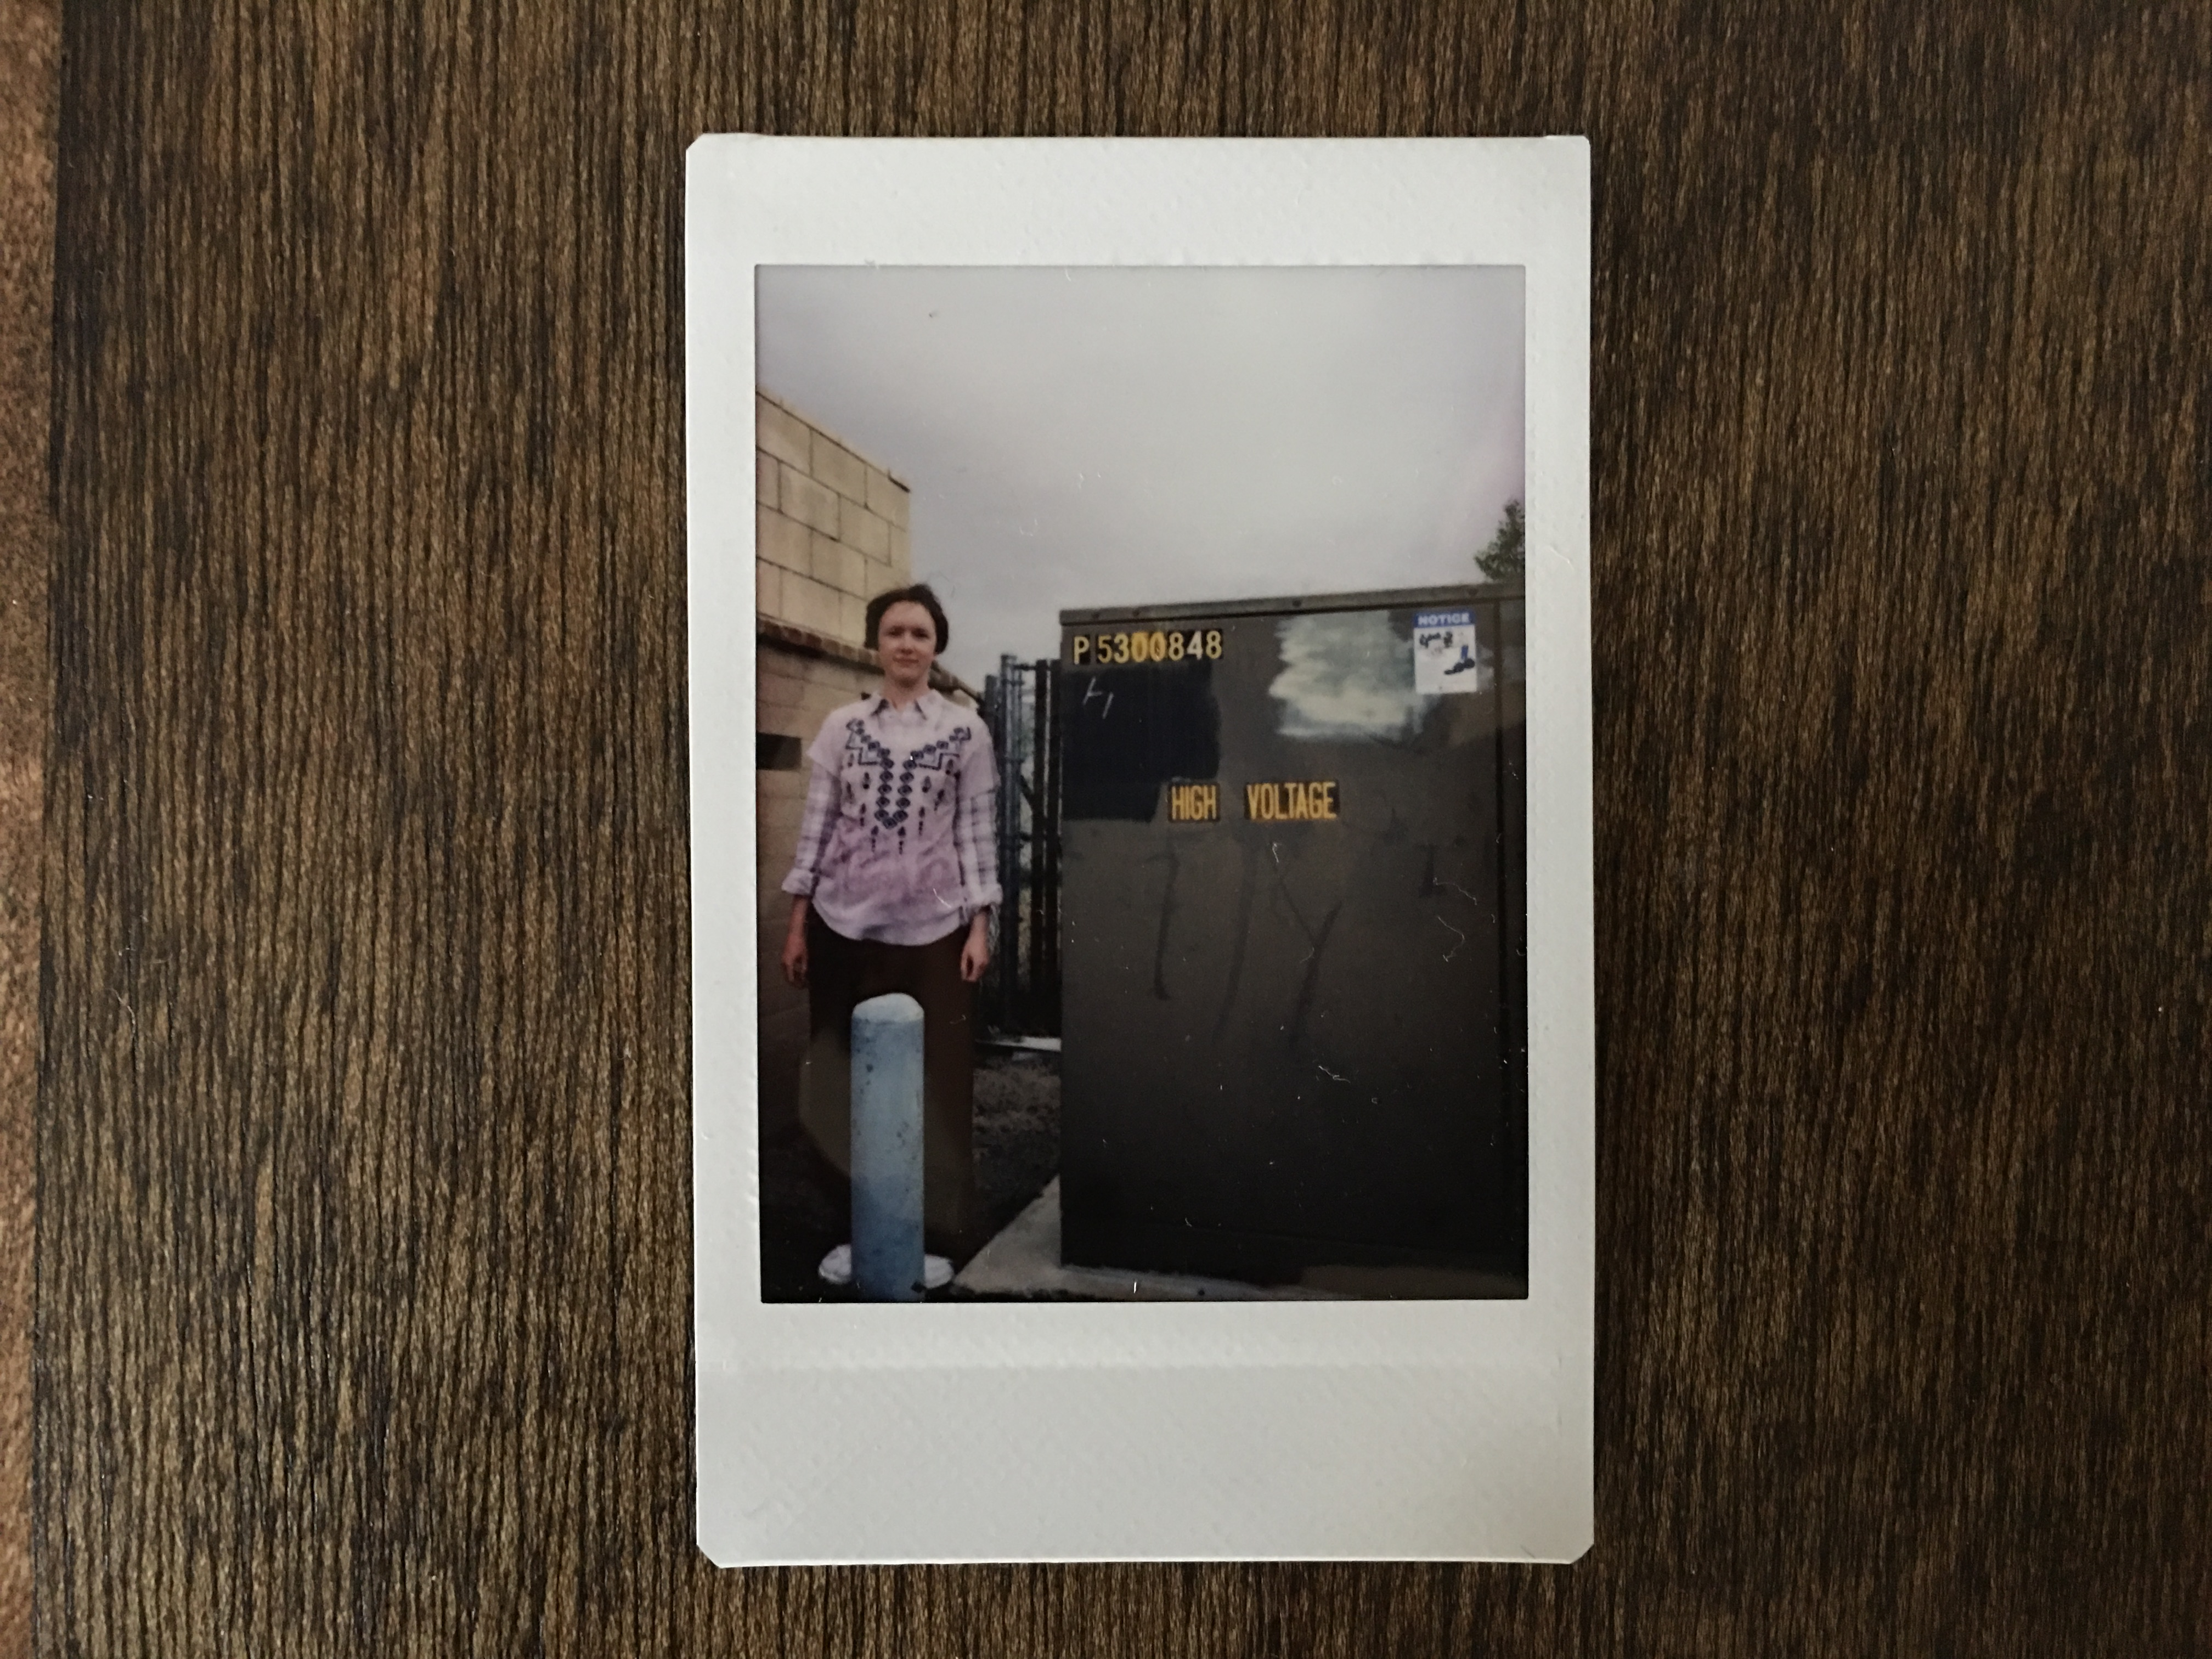 """Jessica in a pink shirt standing next to a large electrical box that says, """"High Voltage"""""""